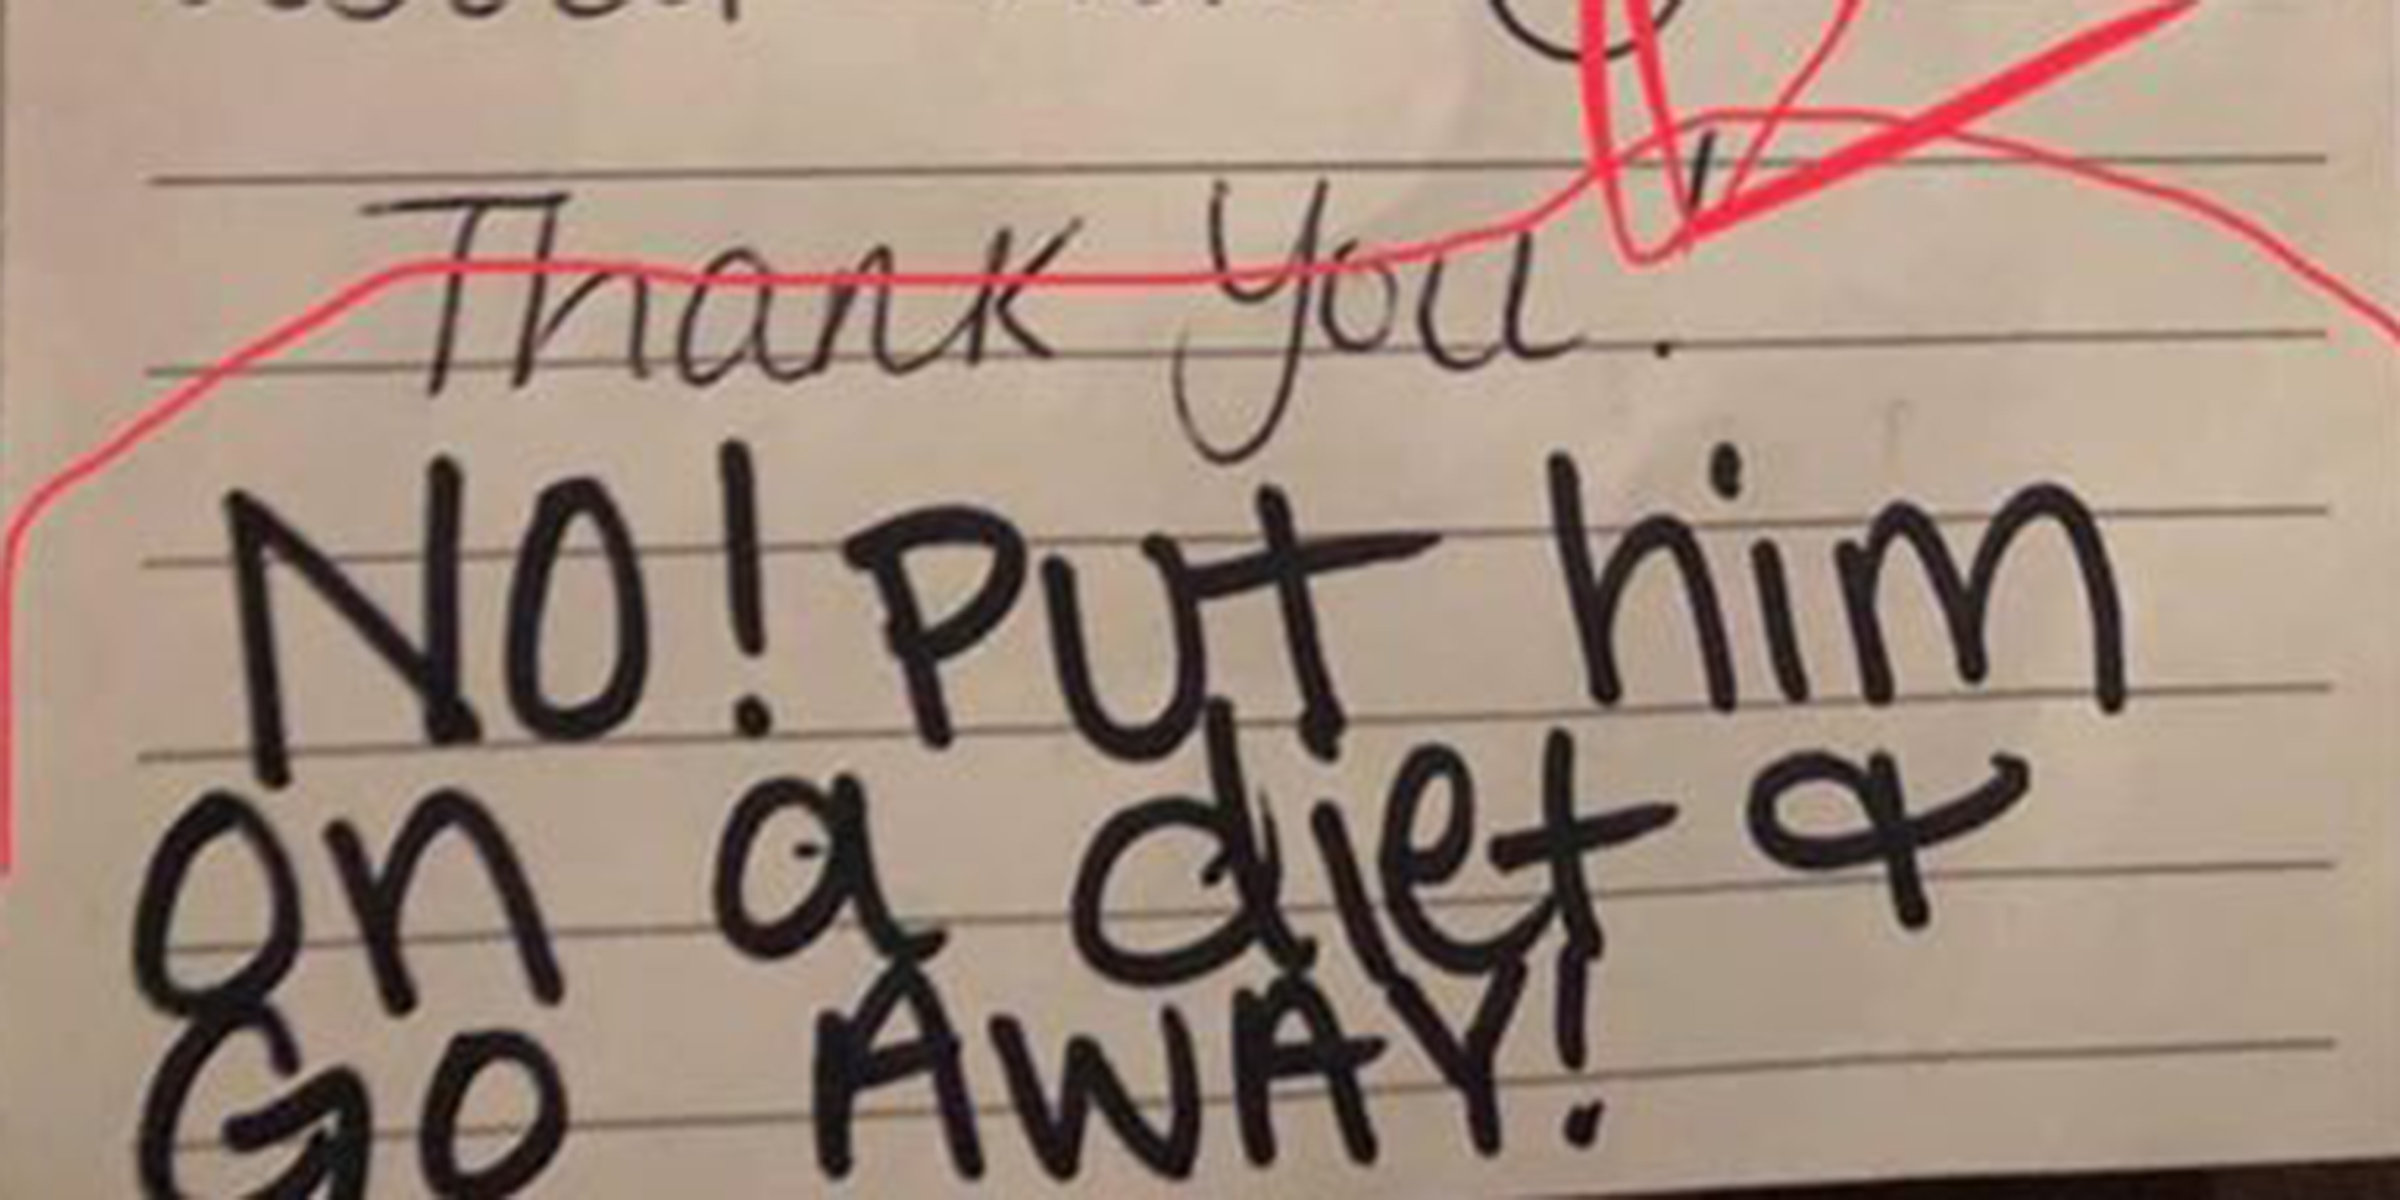 Day care worker tells mom to put son on a diet in note